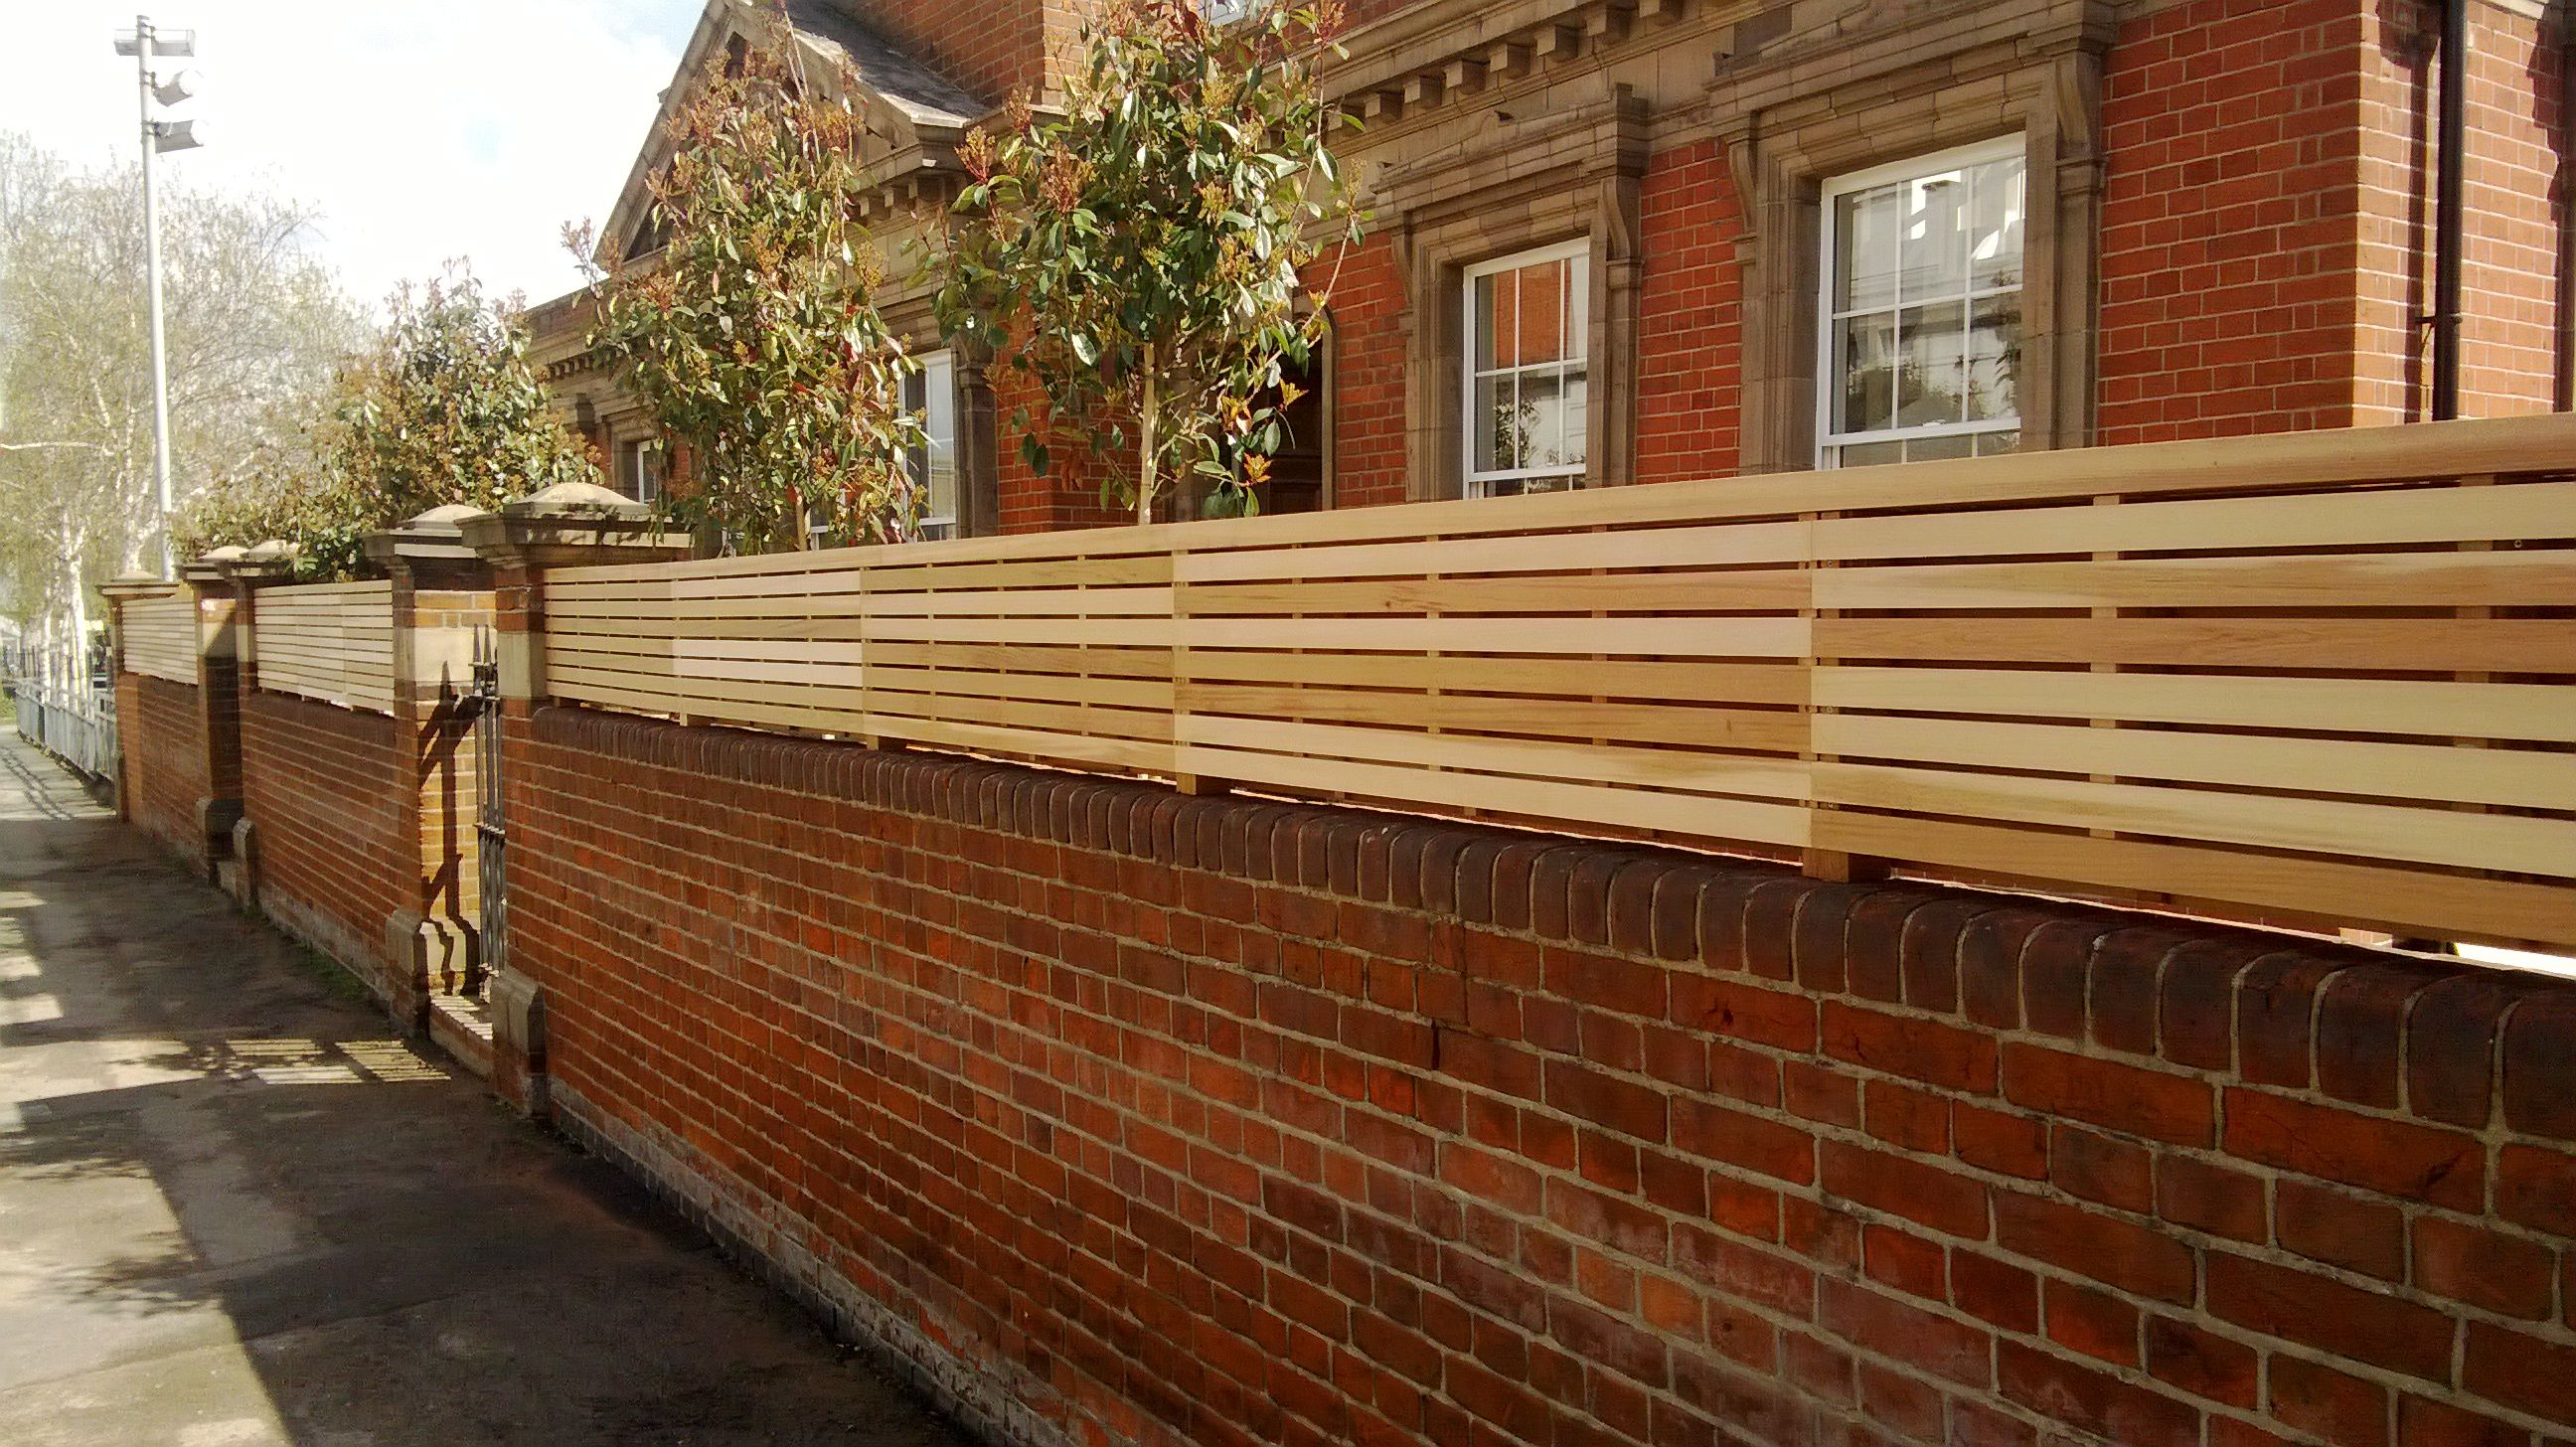 Slatted Panels Fixed To The Top Of A Wall · Lattice FenceTrellis FenceGarden  ...